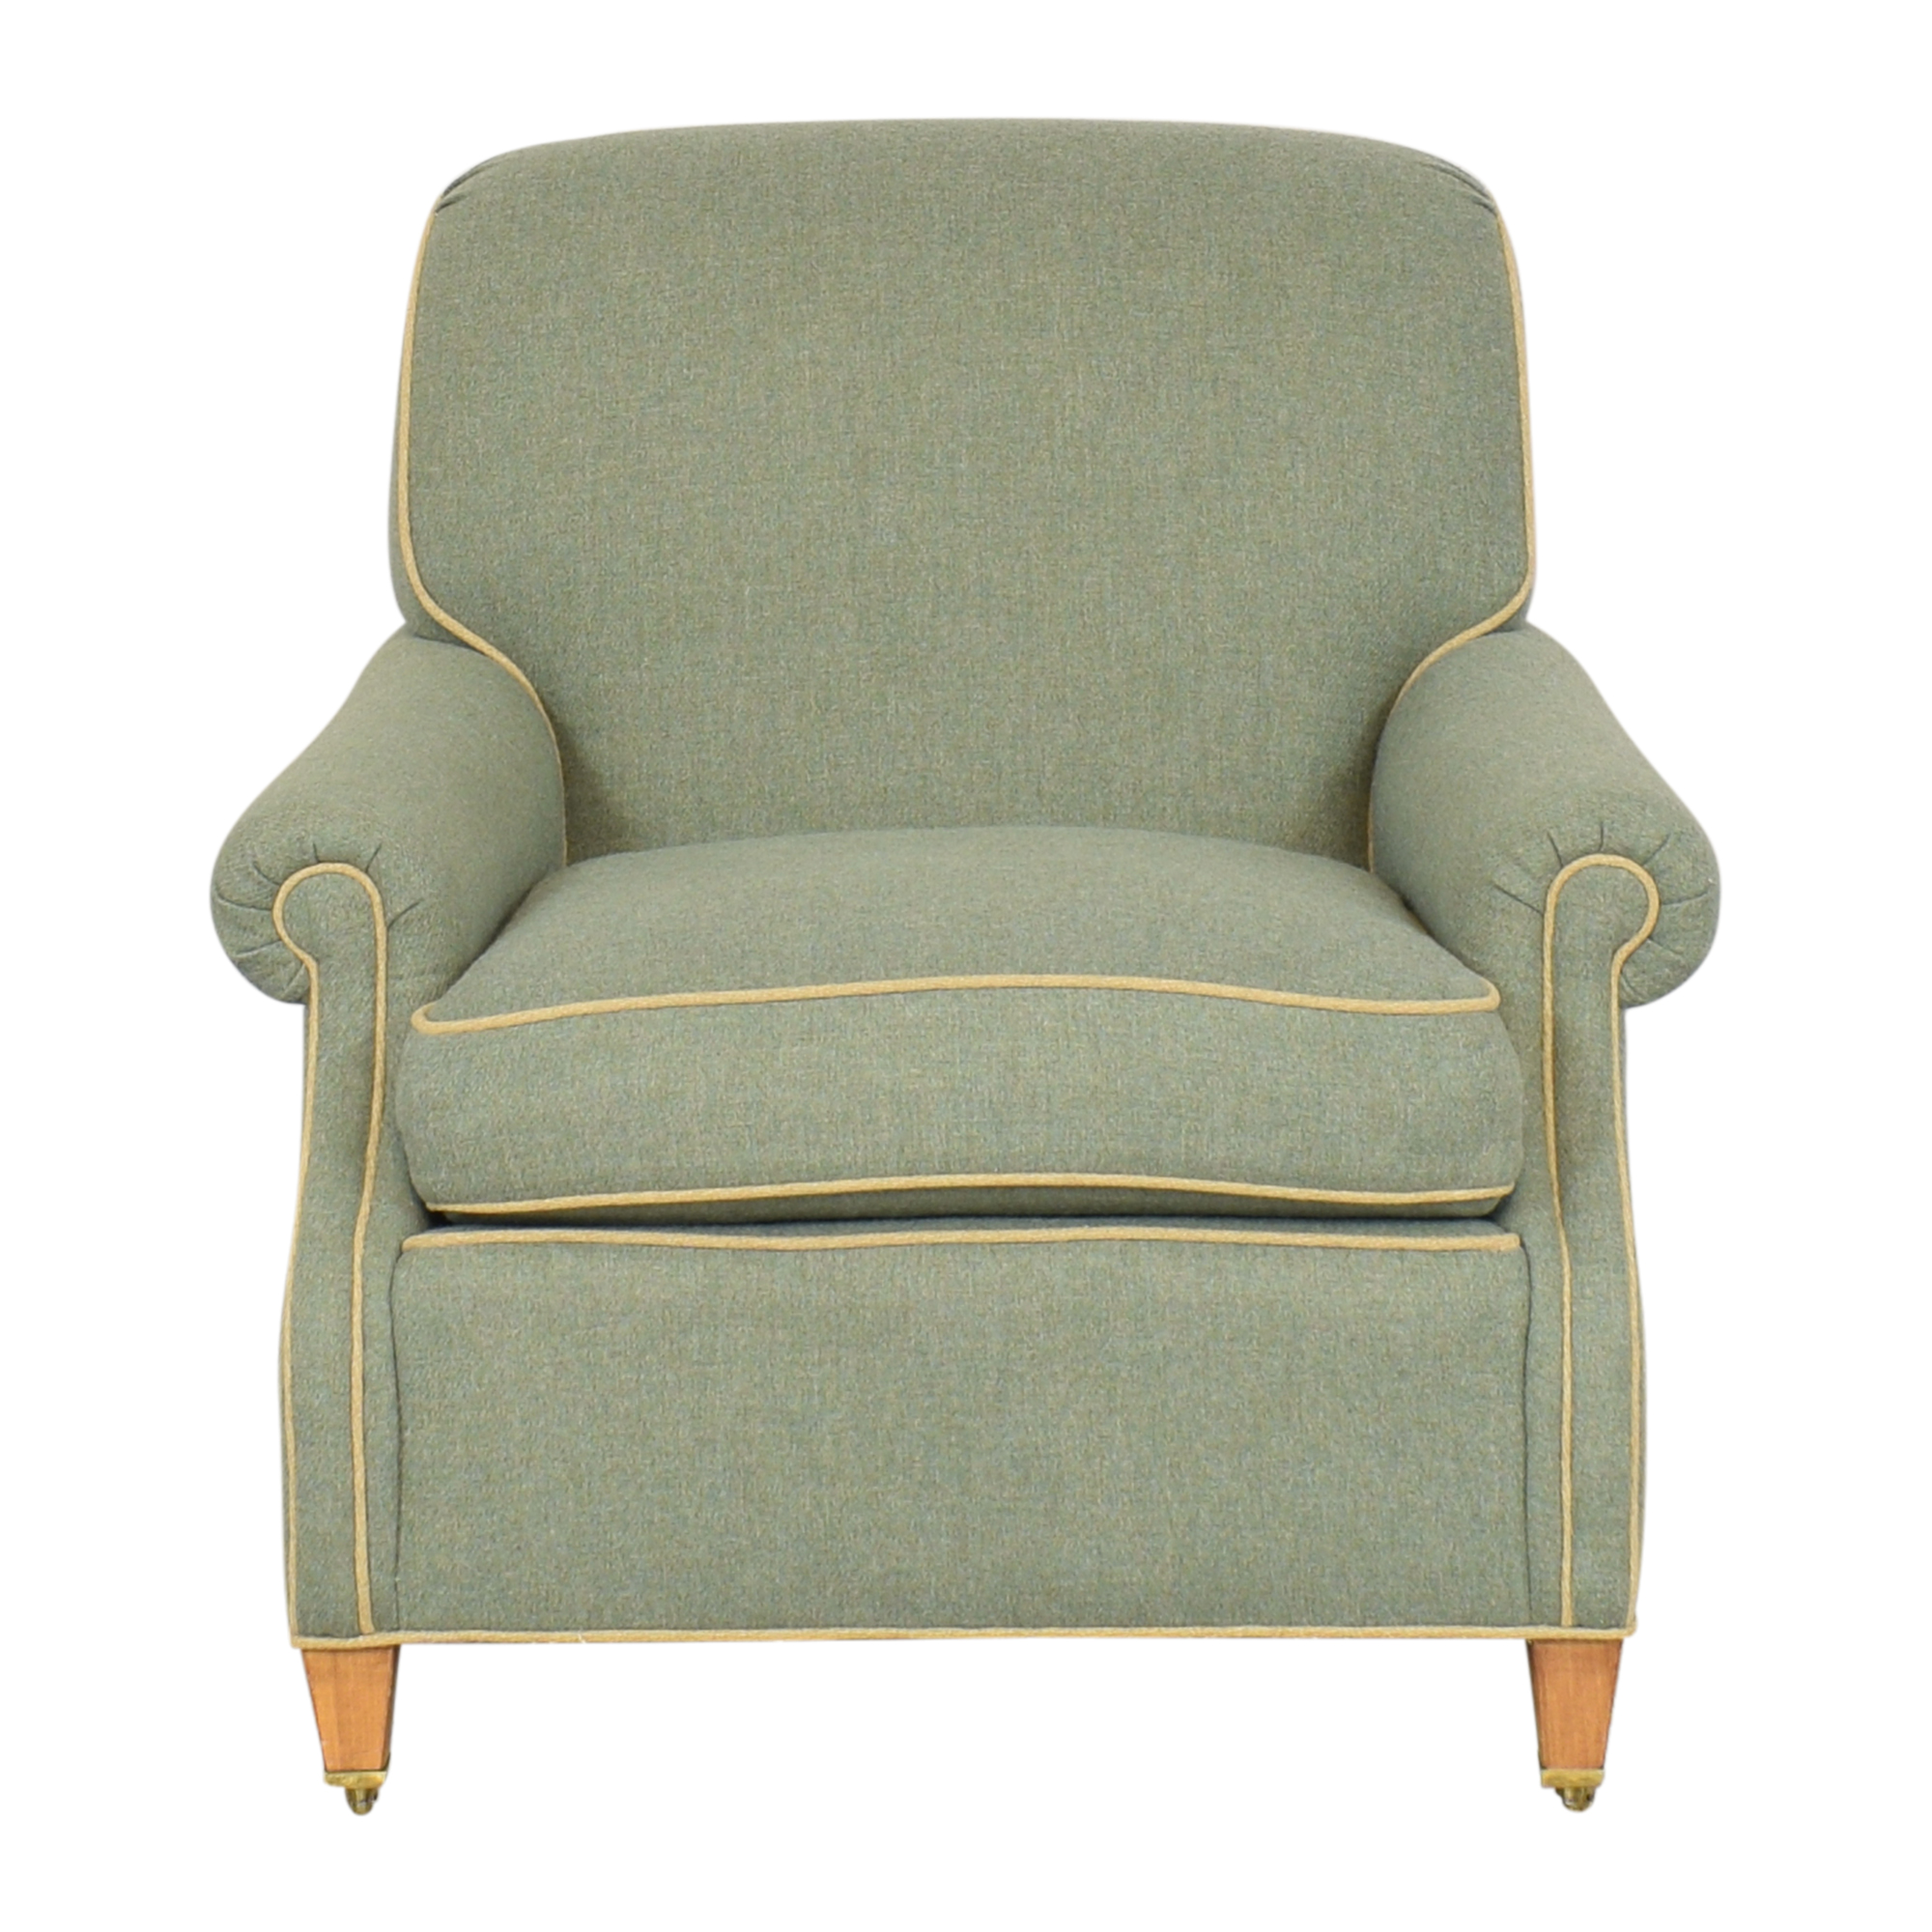 Charles Stewart Company Charles Stewart Company Accent Chair price